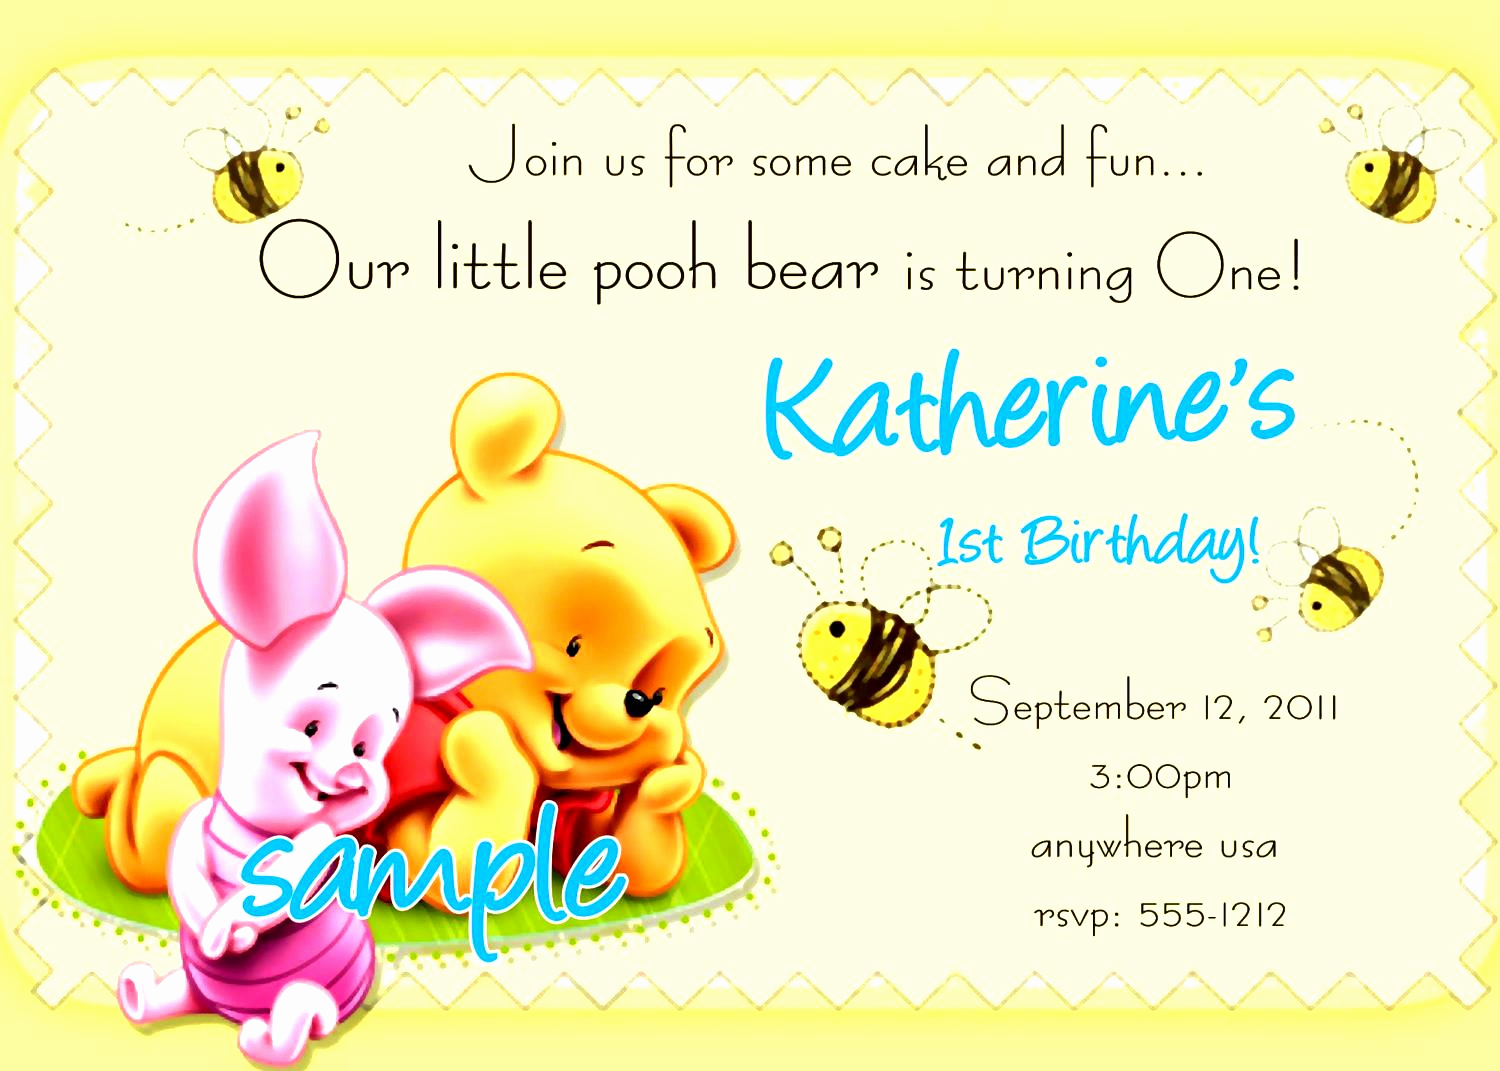 Kids Birthday Party Invitation Template Elegant Birthday Invitation Card Template for Kids